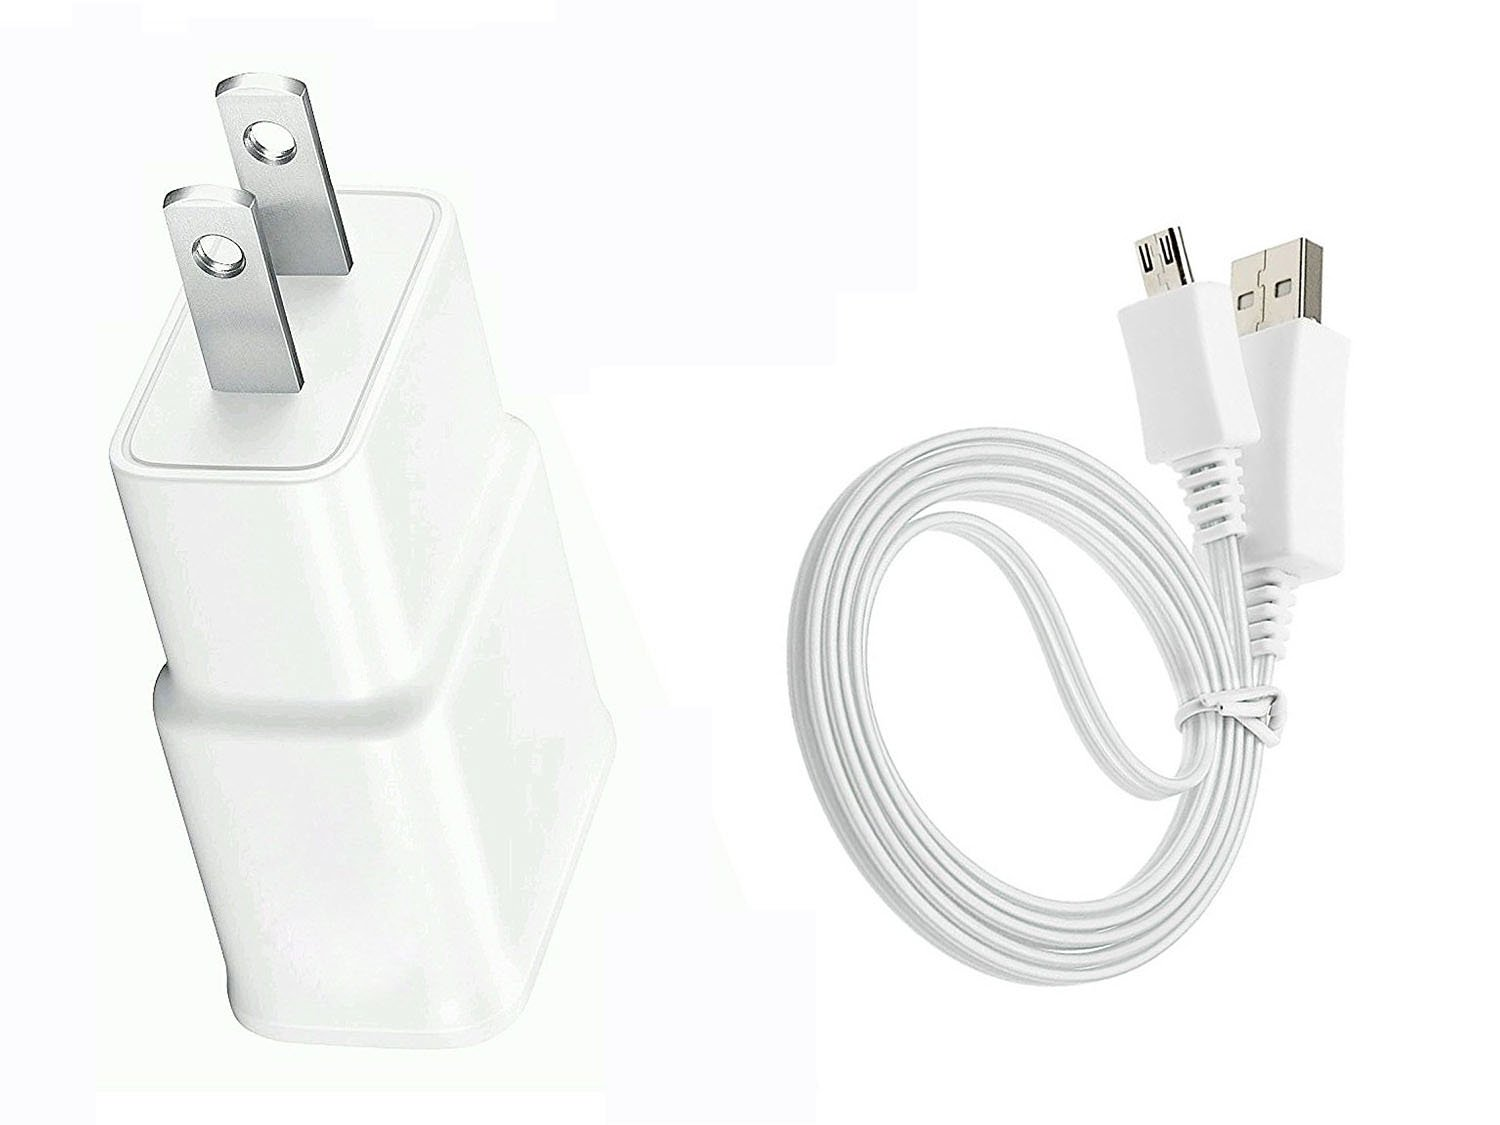 3FT USB AC DC Adapter+Power Charger Cord Cable For Samsung Galaxy Tab 3 4 7.0 8.0 10.1 Tablet White by JNSupplier